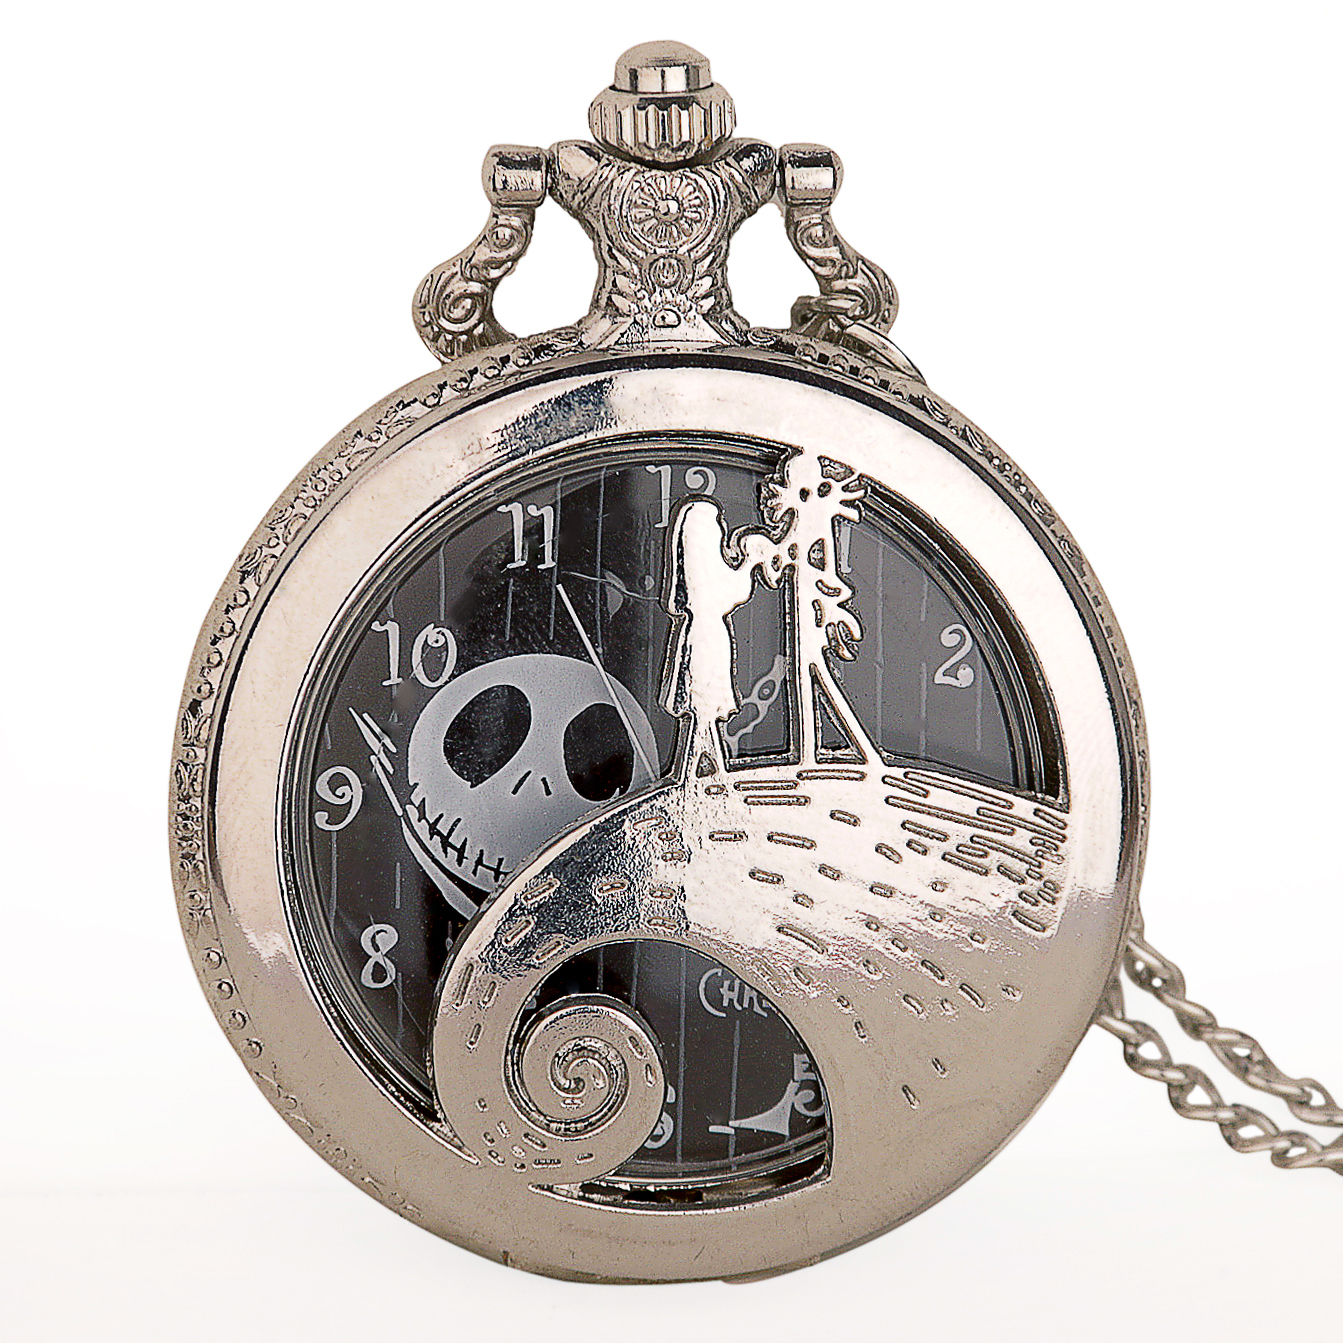 Unique Pocket Watch Vintage Night Mare Design Shilver Quartz Pocket Watches For Men Women Reloj De Bolsillo Clock GifTD2048